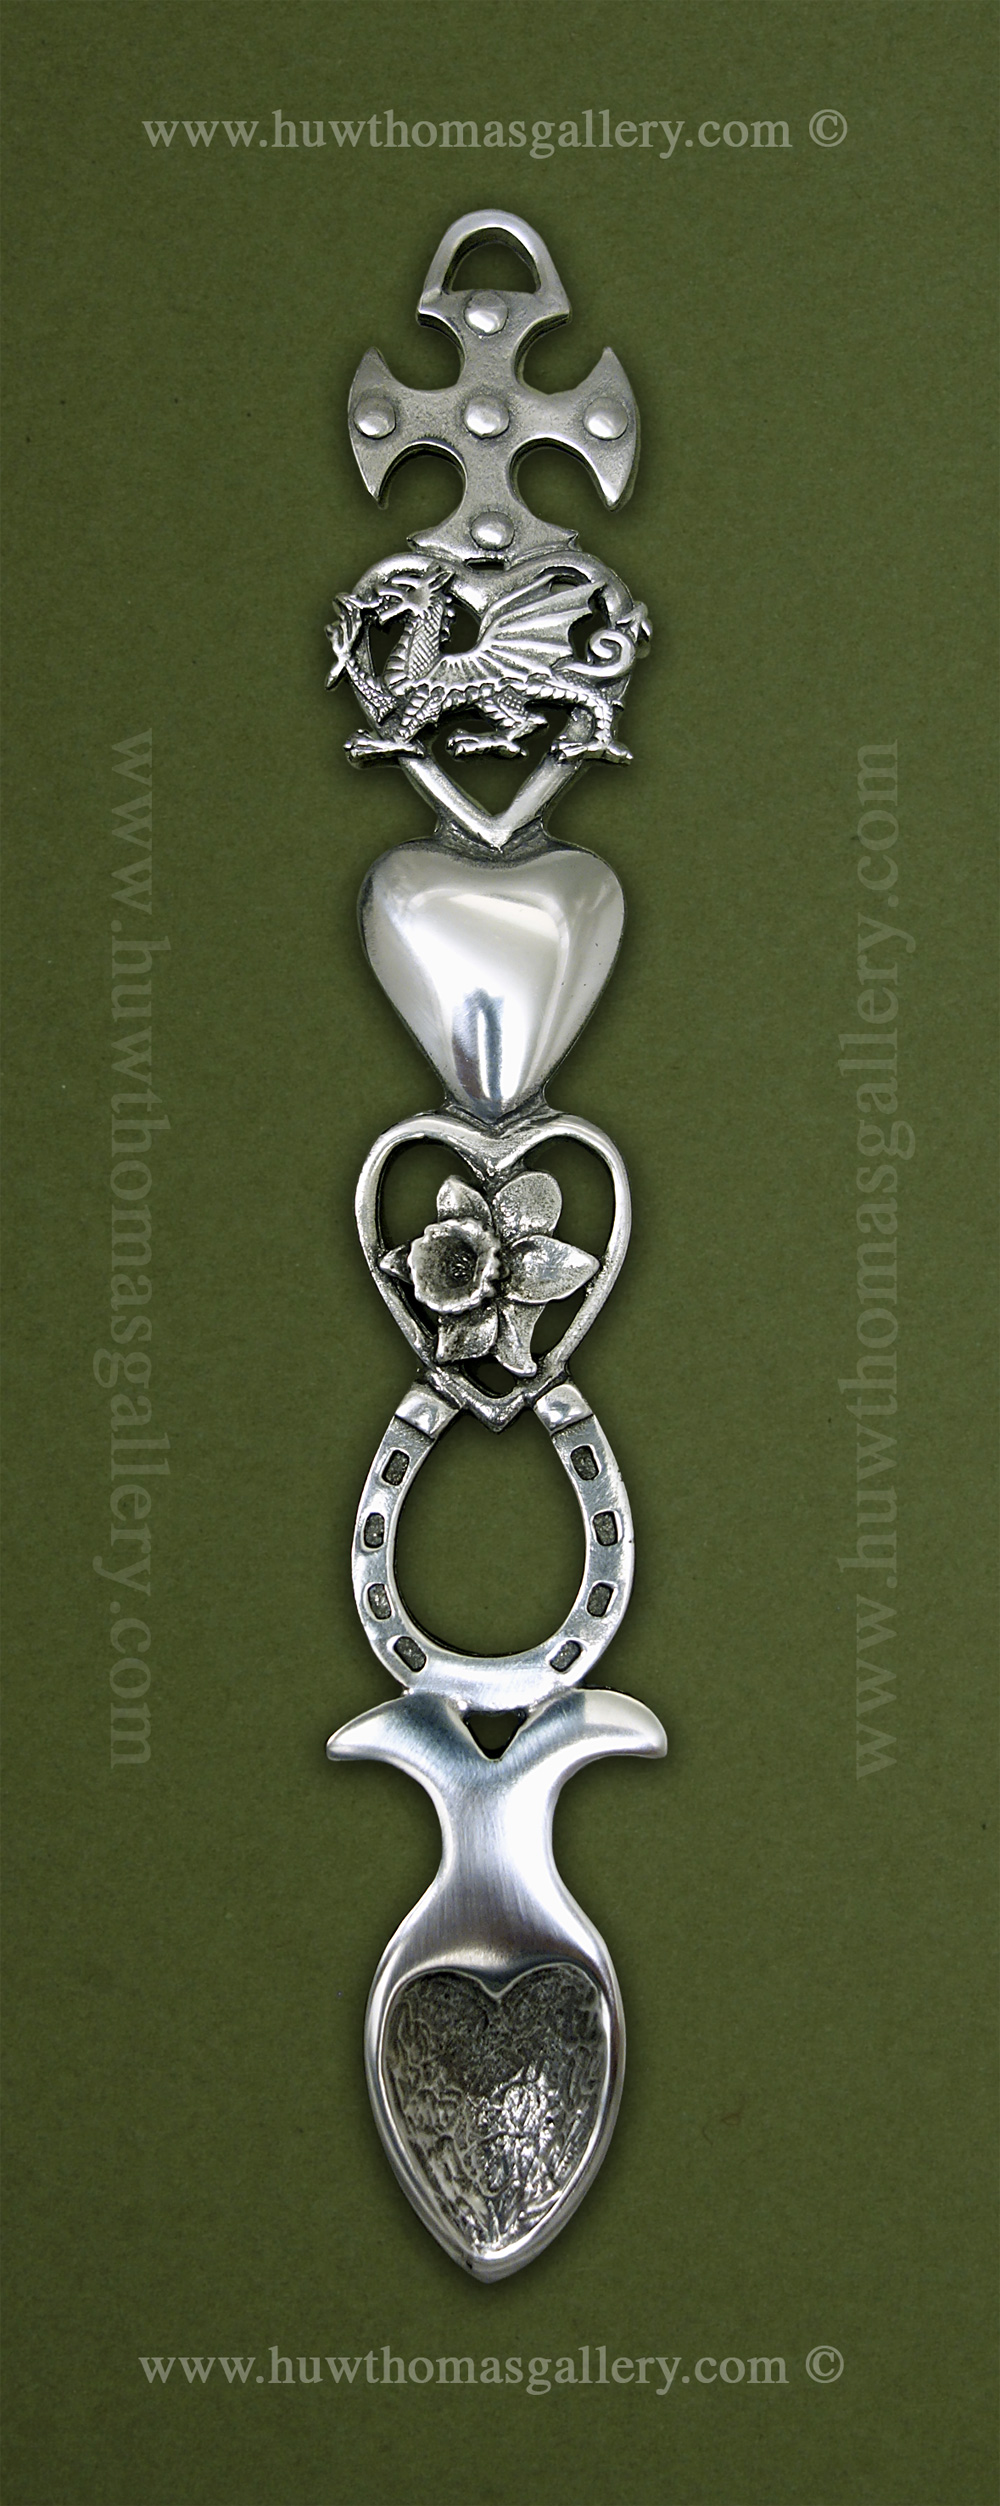 Pewter Lovespoons   Welsh Lovespoons   A great place for